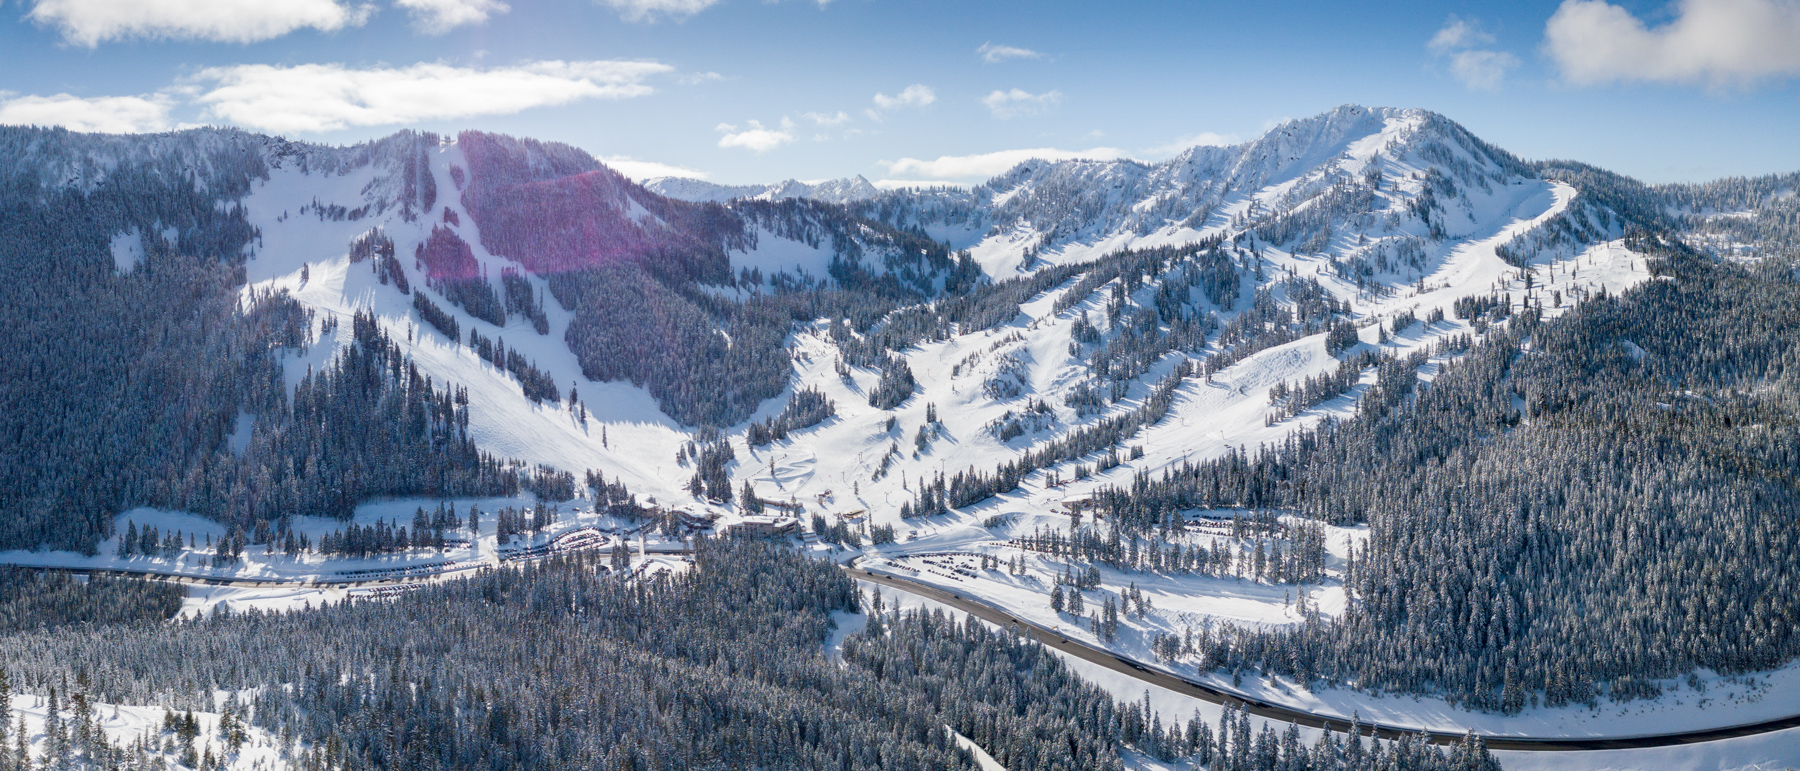 For Stevens Pass visitors looking to save, you'll want to plan in advance and purchase your tickets at least 7 days prior to your trip for the lowest price guaranteed.  (Image: Stevens Pass, Vail Resorts)